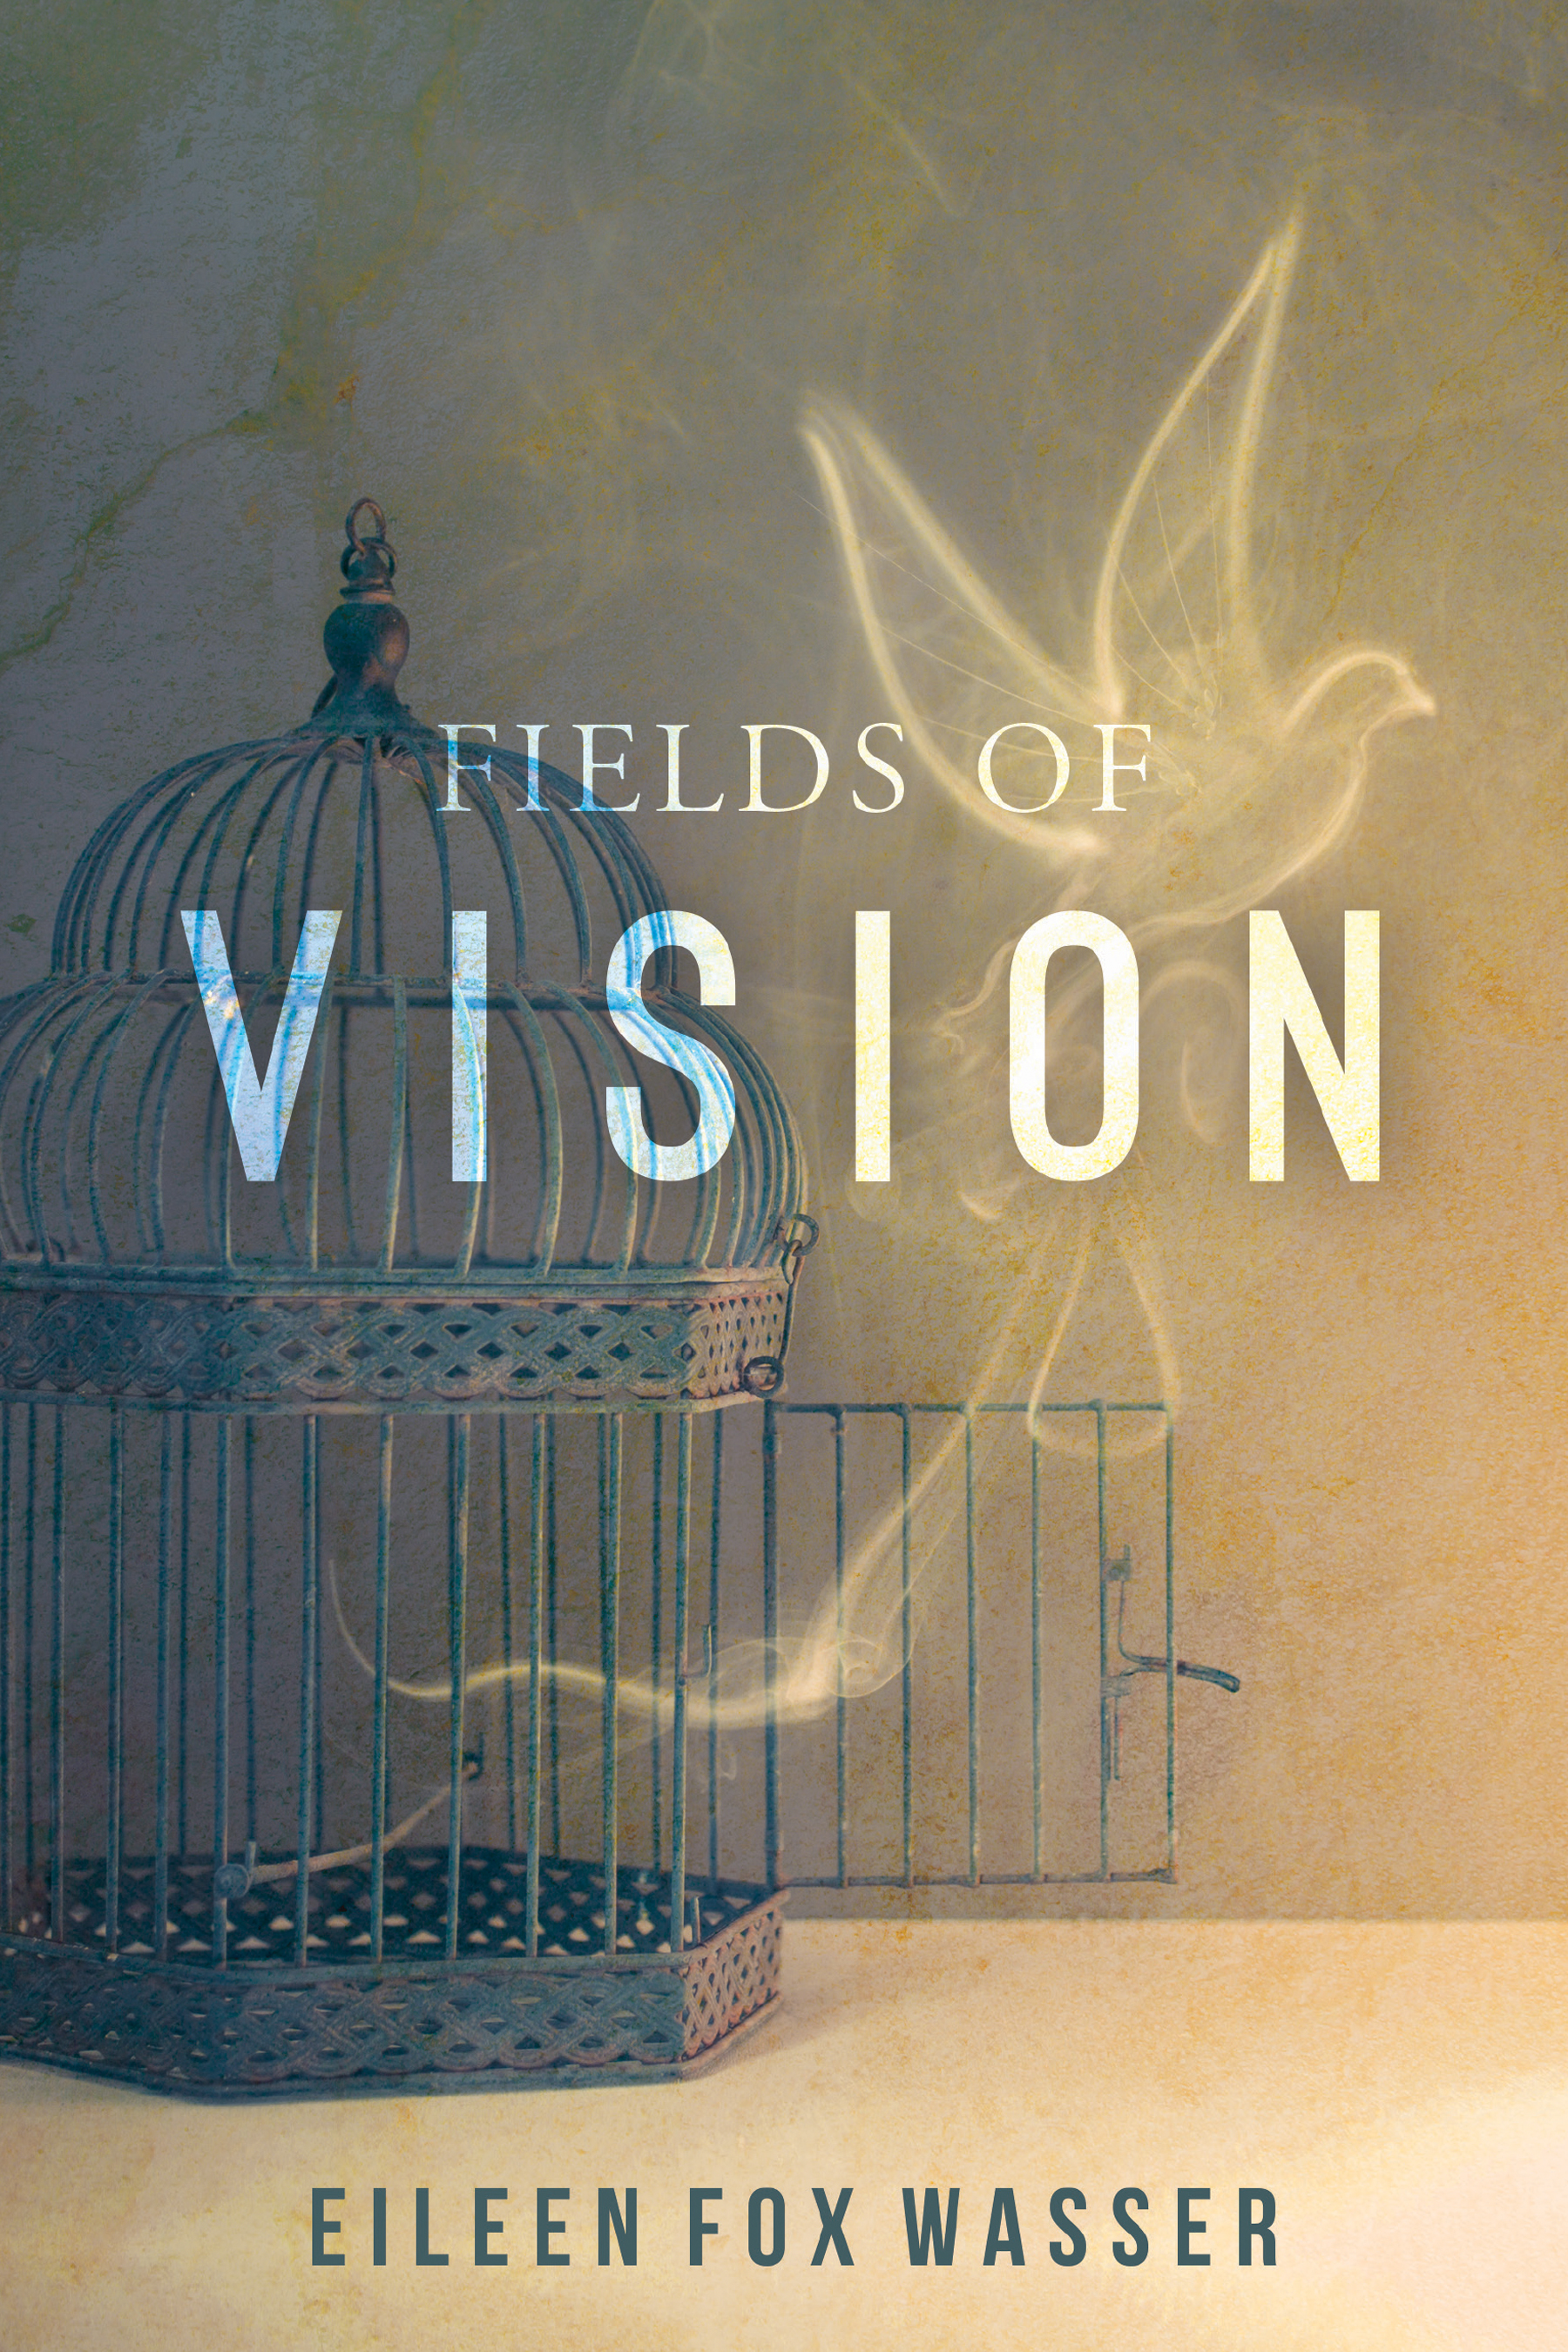 Fields of Vision.jpg